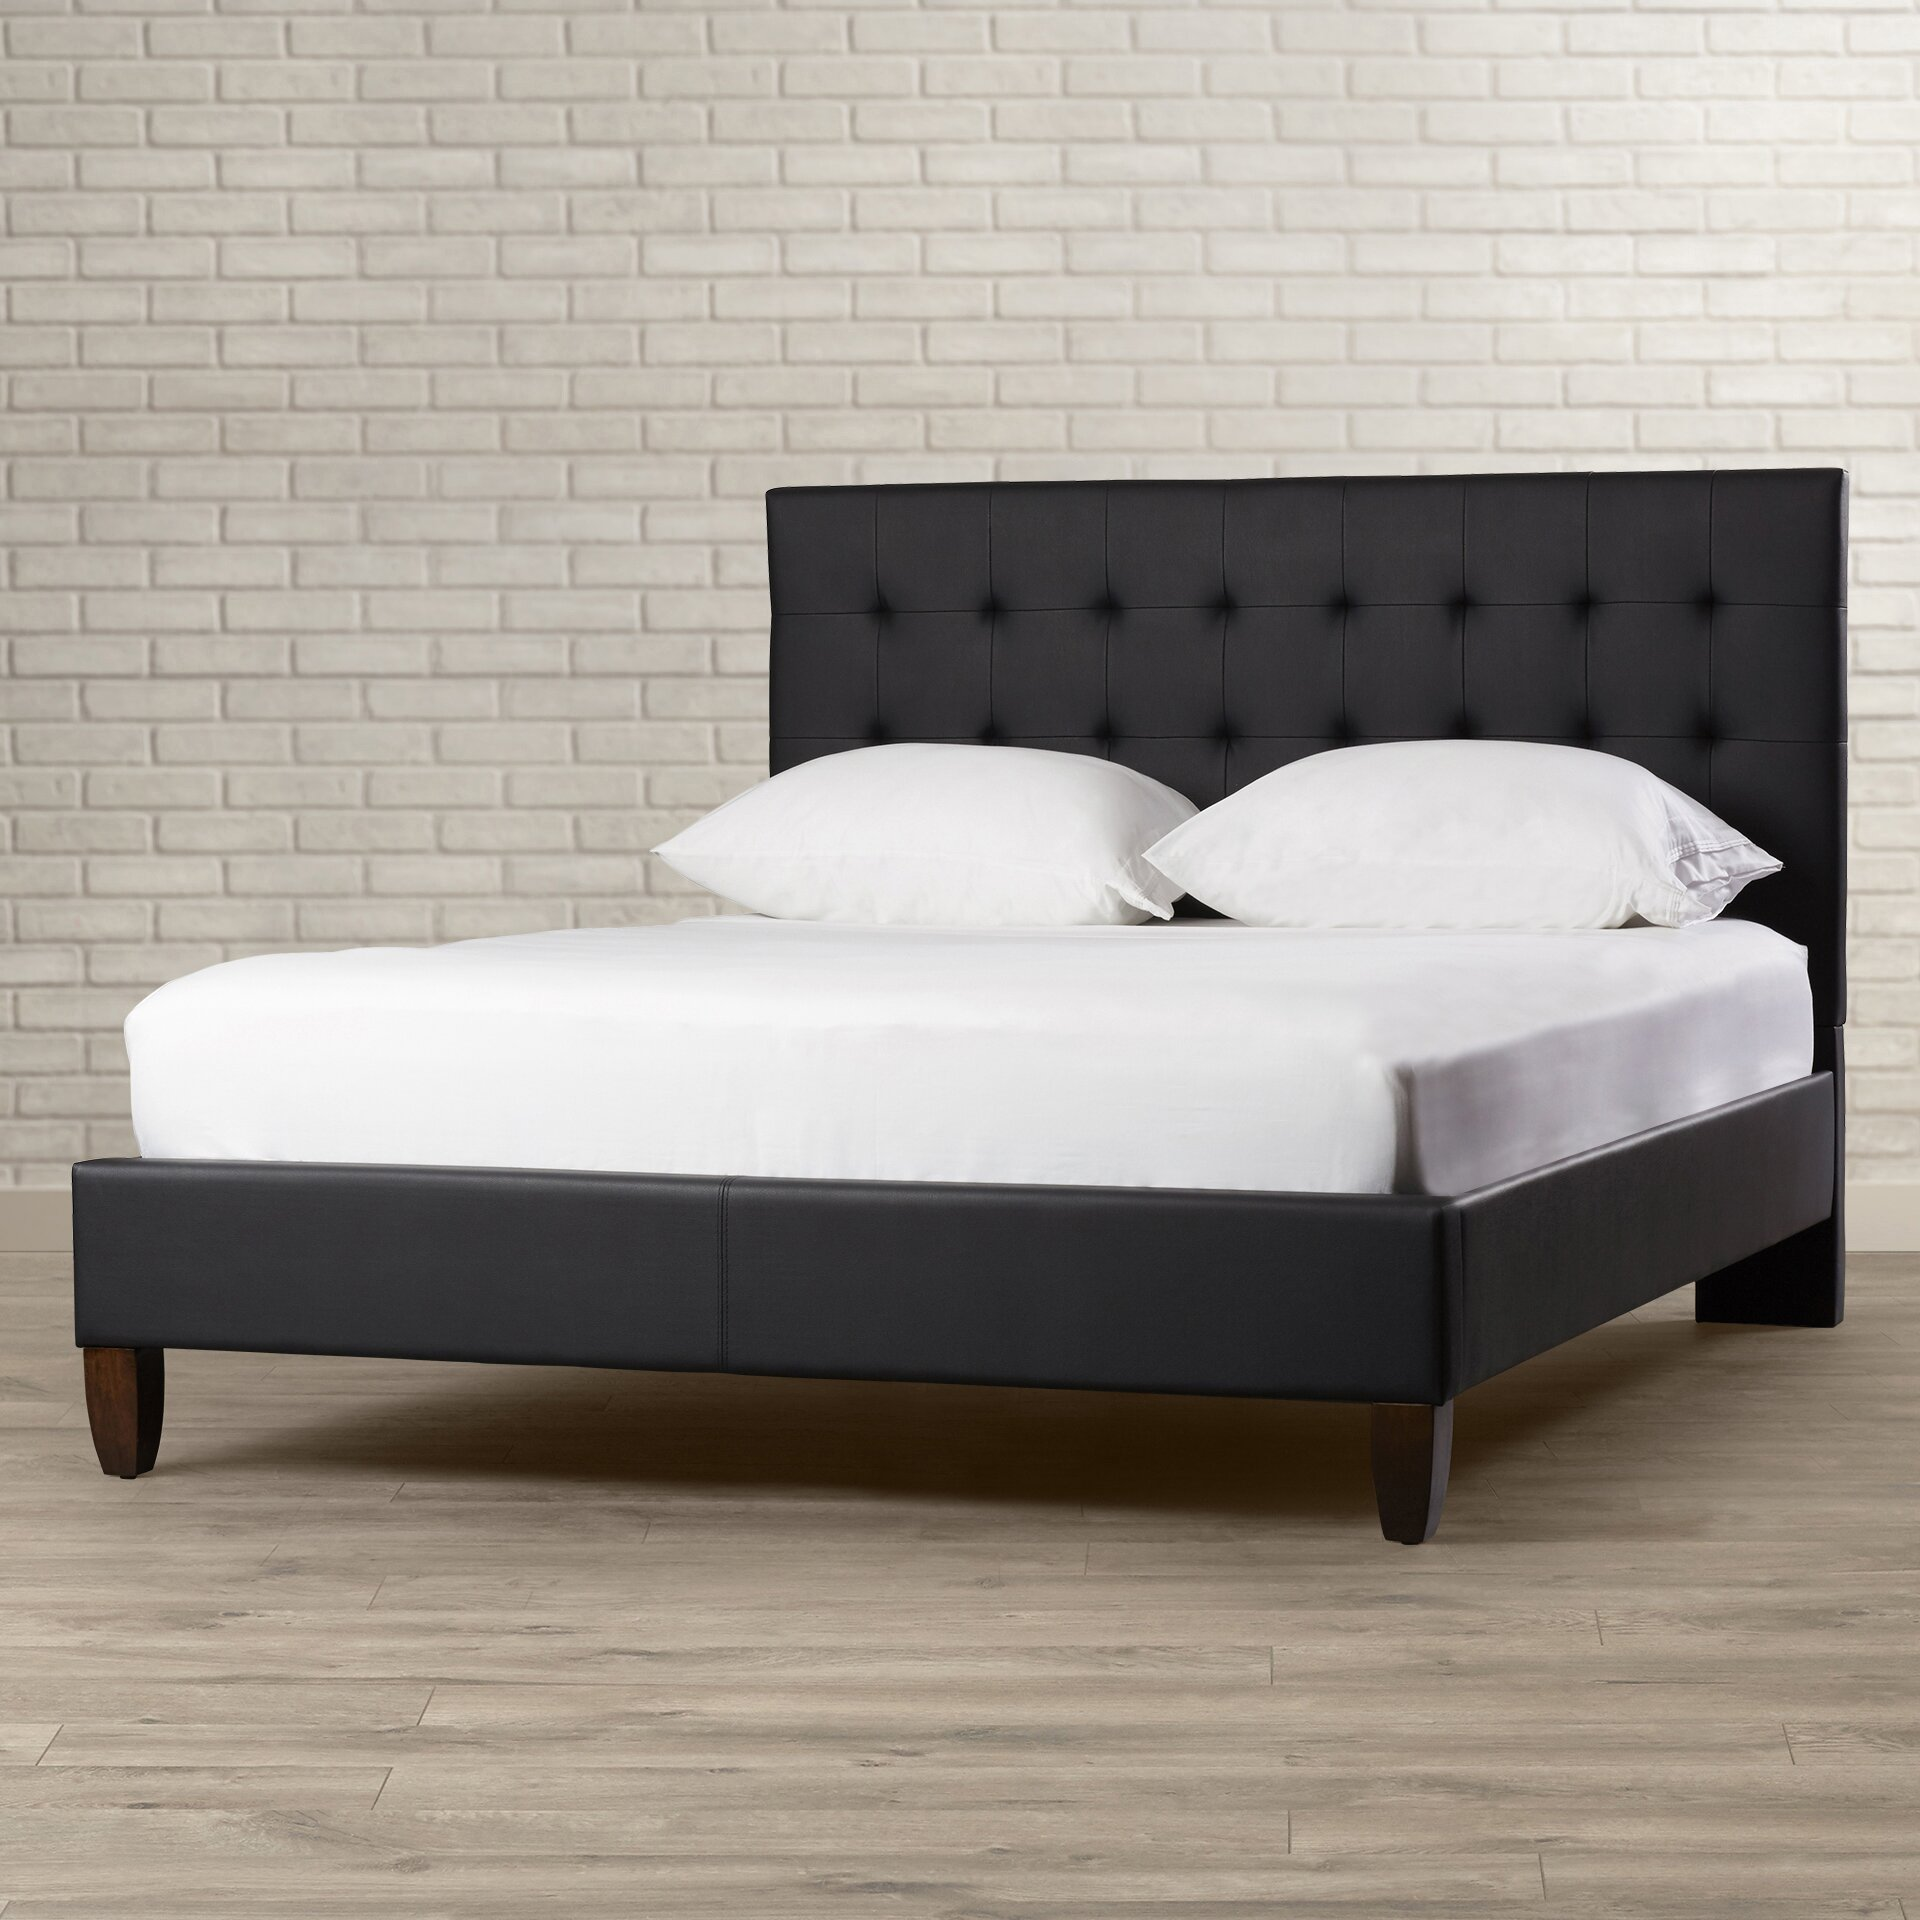 Varick Gallery Cortez Upholstered Storage Platform Bed